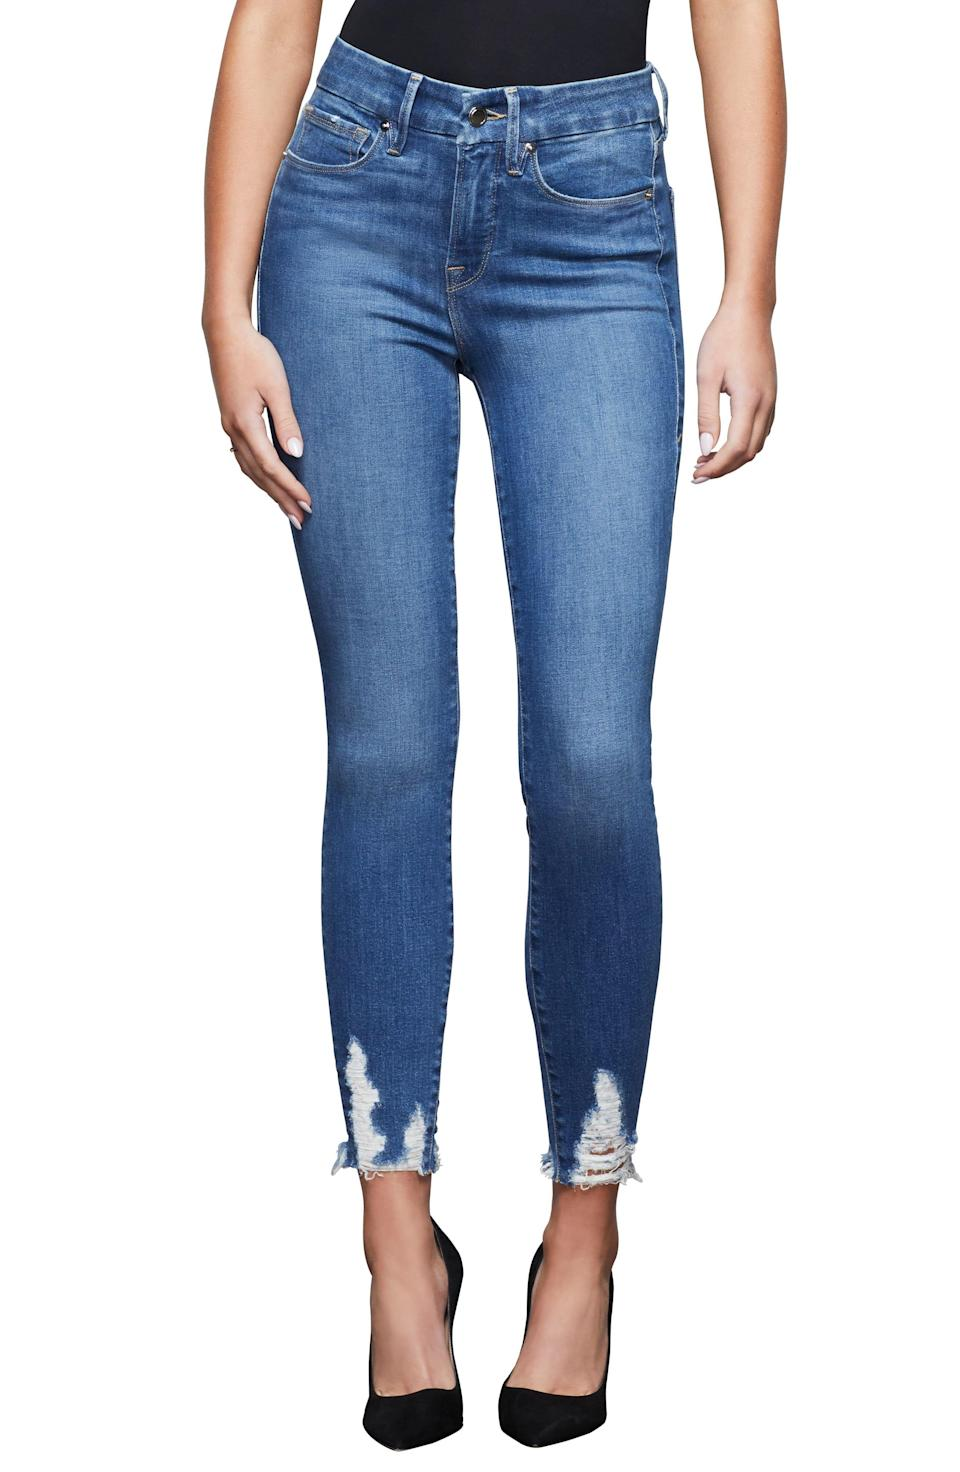 """<p><strong>GOOD AMERICAN</strong></p><p>nordstrom.com</p><p><strong>$95.40</strong></p><p><a href=""""https://go.redirectingat.com?id=74968X1596630&url=https%3A%2F%2Fwww.nordstrom.com%2Fs%2Fgood-american-good-legs-high-waist-chewed-hem-ankle-skinny-jeans-blue-433-regular-plus-size%2F5573880&sref=https%3A%2F%2Fwww.elle.com%2Ffashion%2Fshopping%2Fg34741930%2Fnordstrom-12-days-of-cyber-savings-sale%2F"""" rel=""""nofollow noopener"""" target=""""_blank"""" data-ylk=""""slk:Shop Now"""" class=""""link rapid-noclick-resp"""">Shop Now</a></p>"""